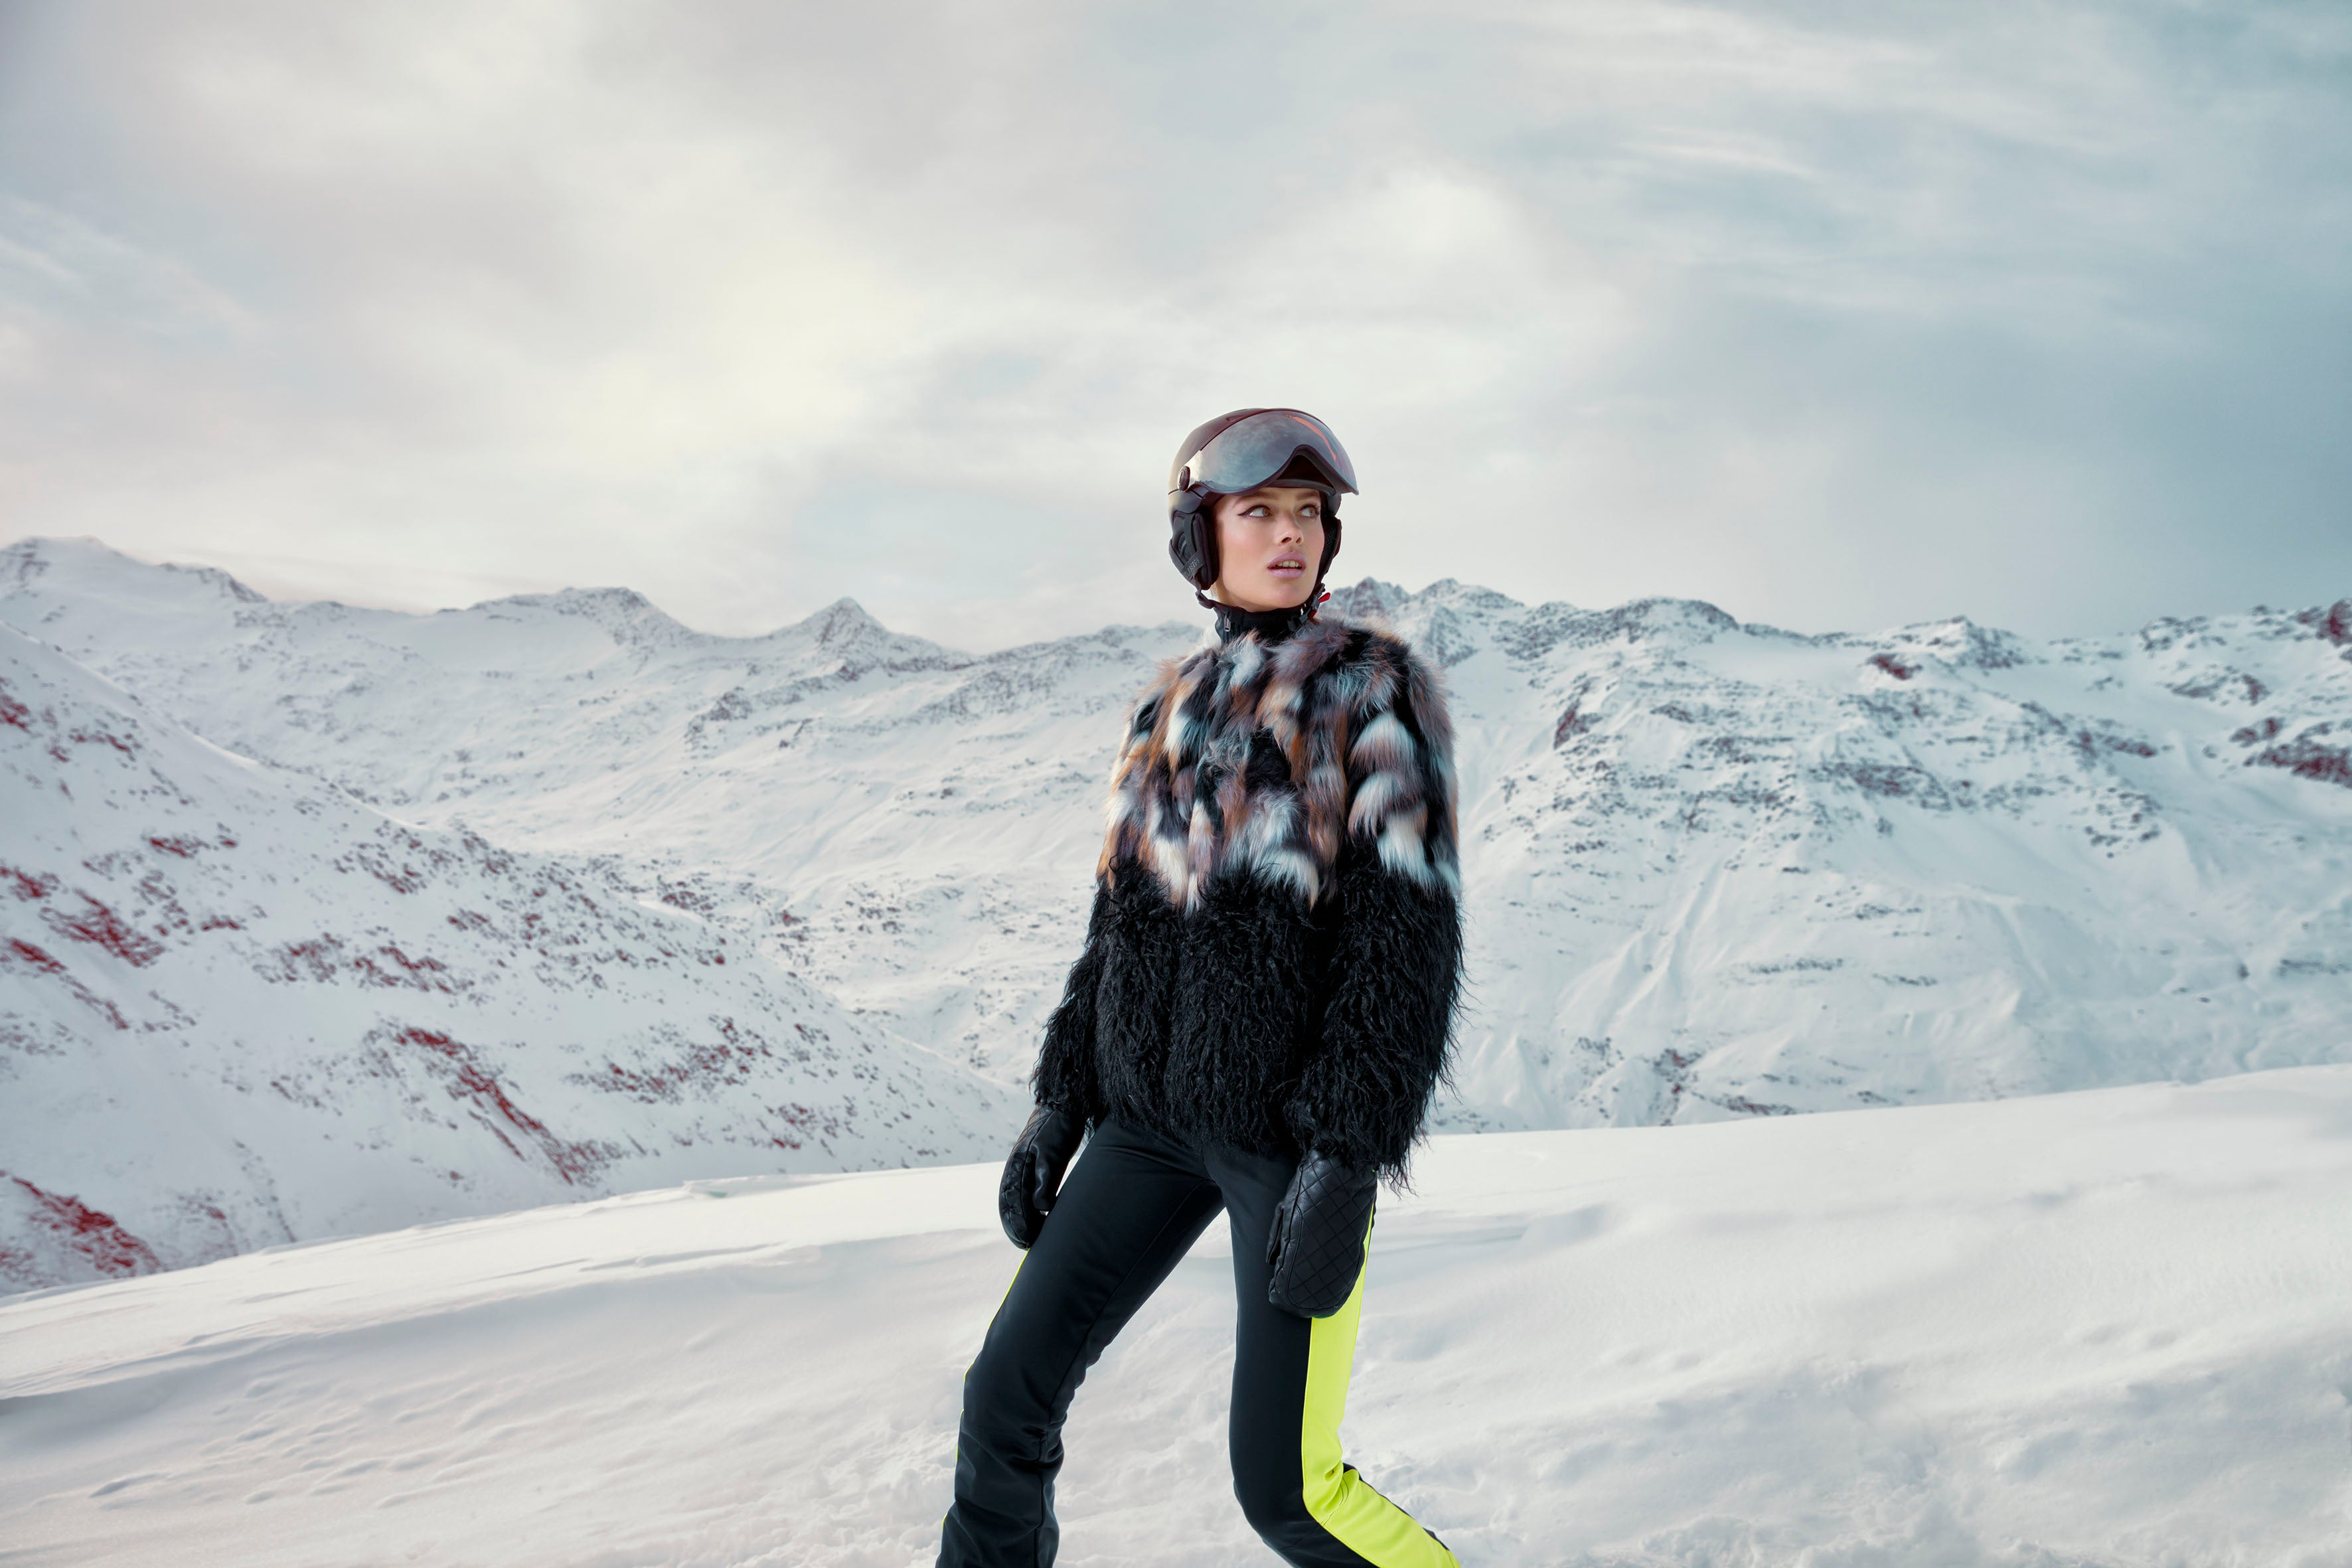 Gift guide for women skiers Winter 18